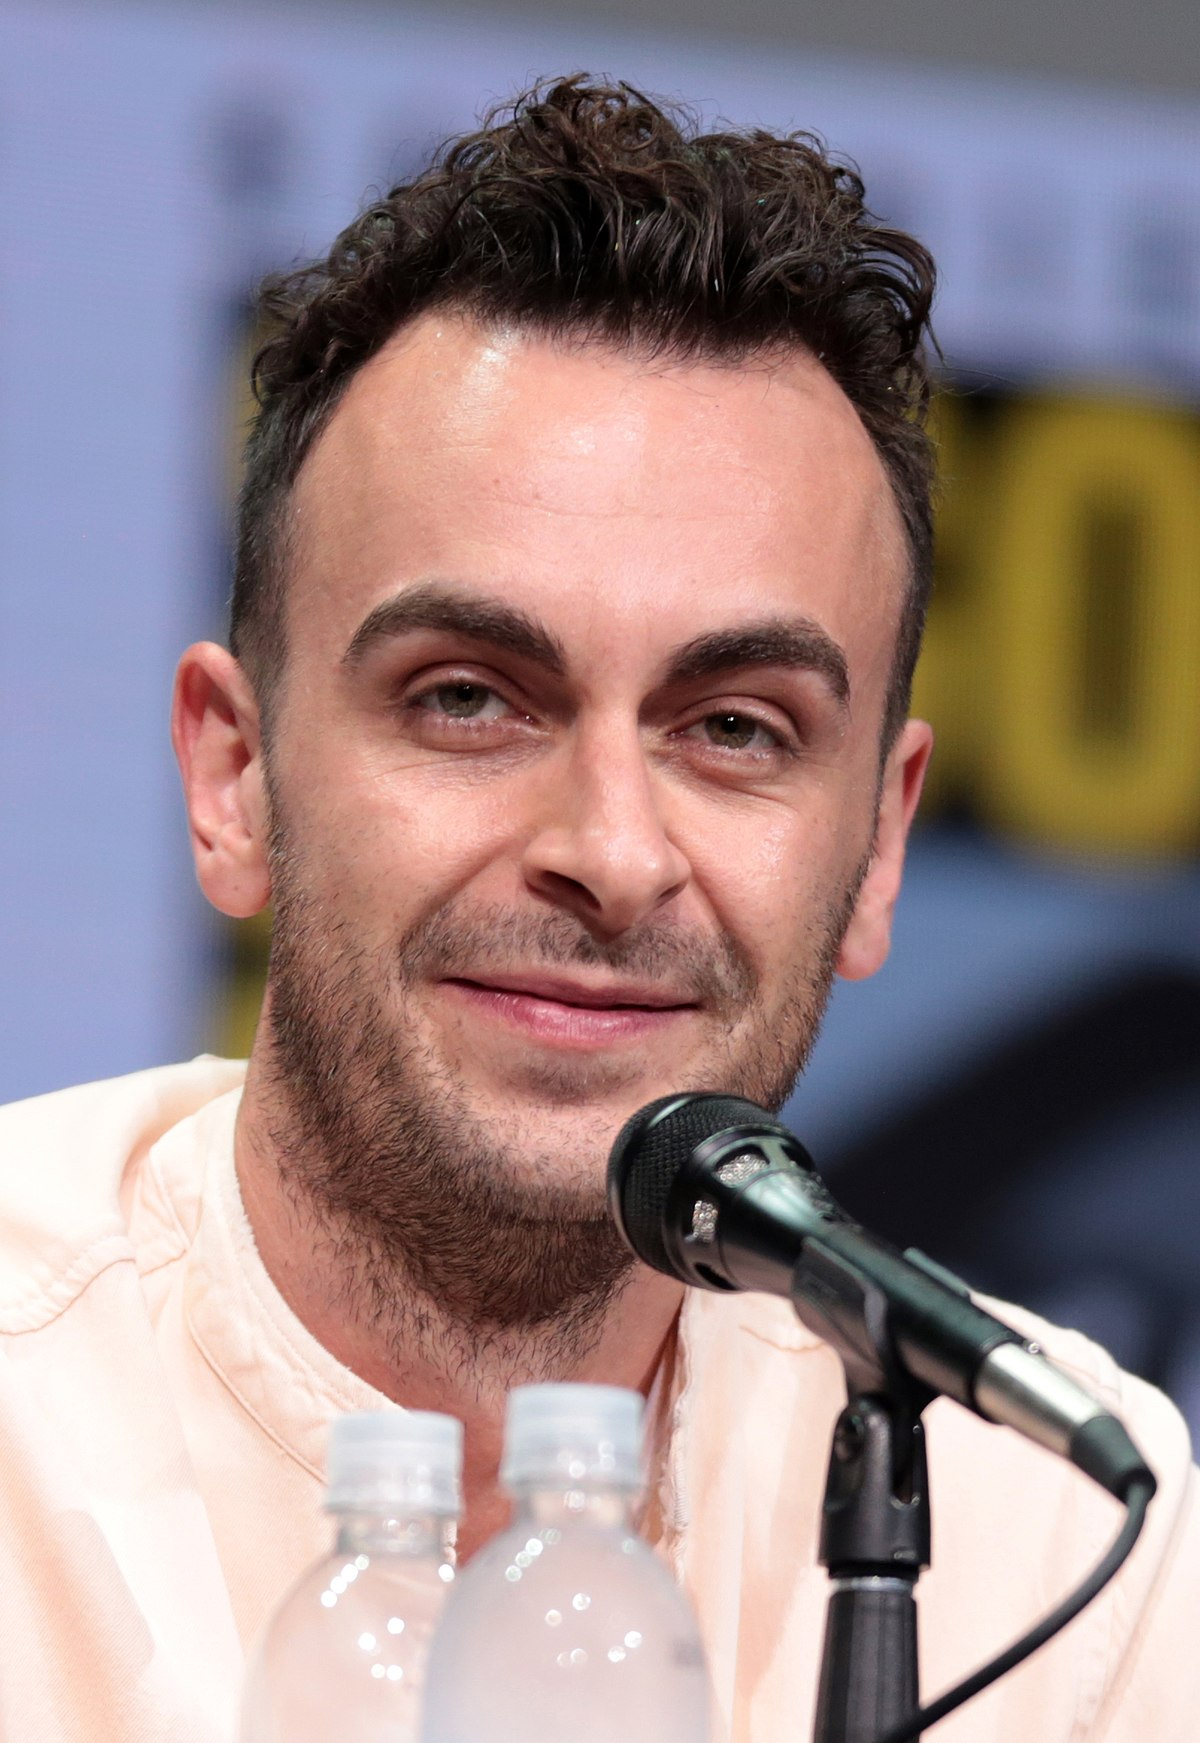 joe gilgun - wikipedia